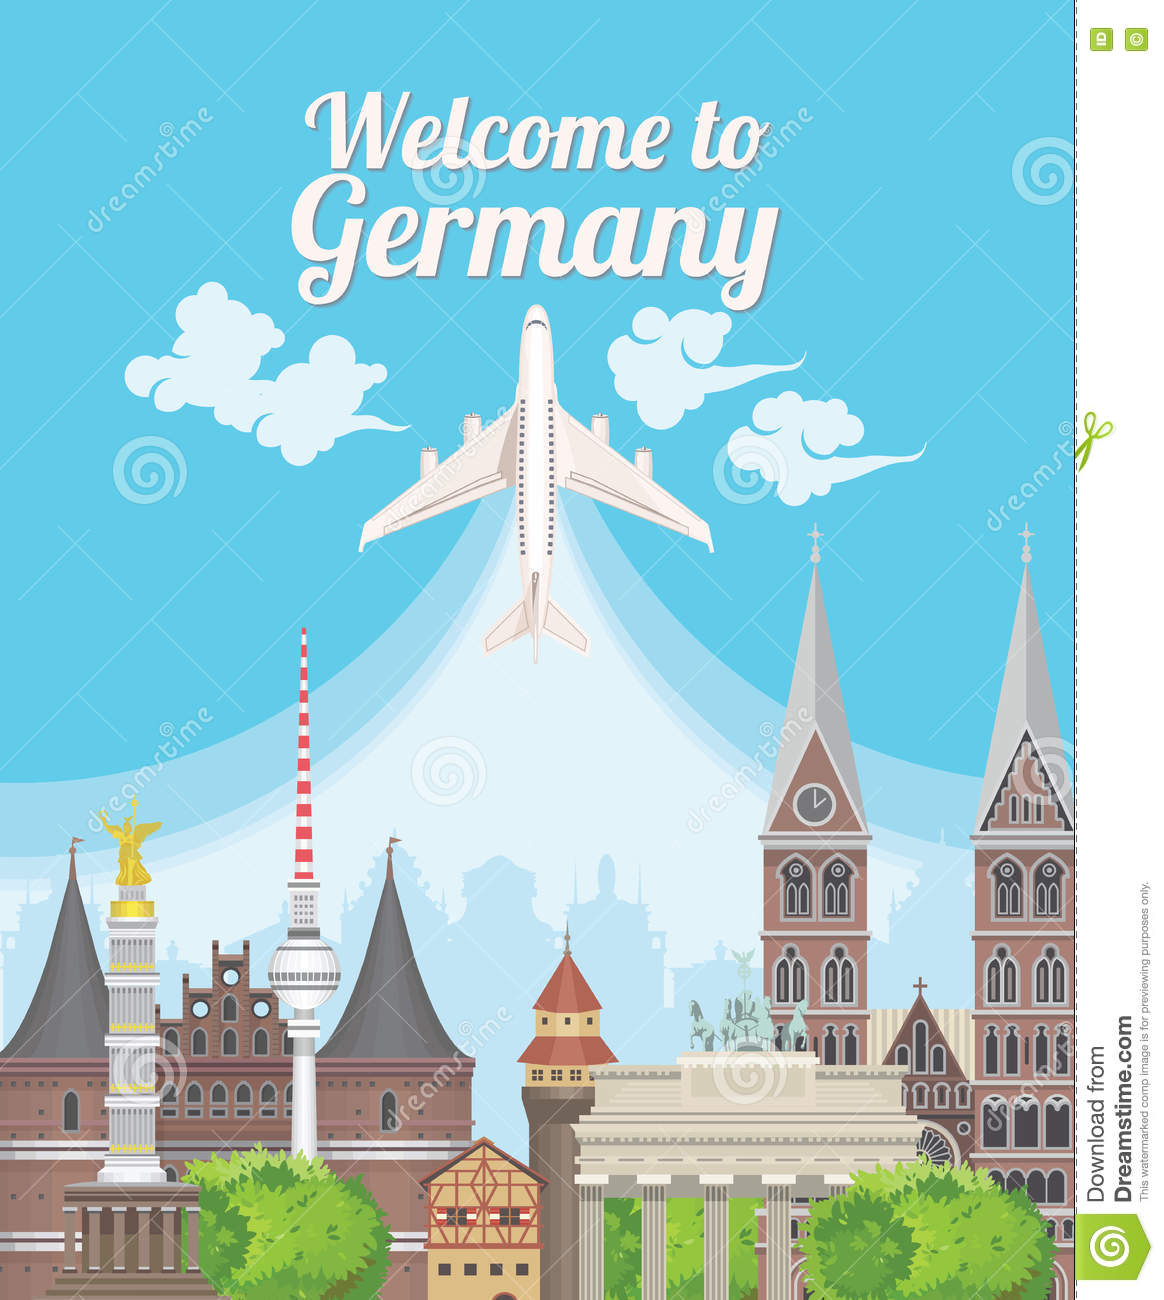 I Want To Visit Germany In German: Welcome To Germany. Travel German Landmarks. Stock Vector